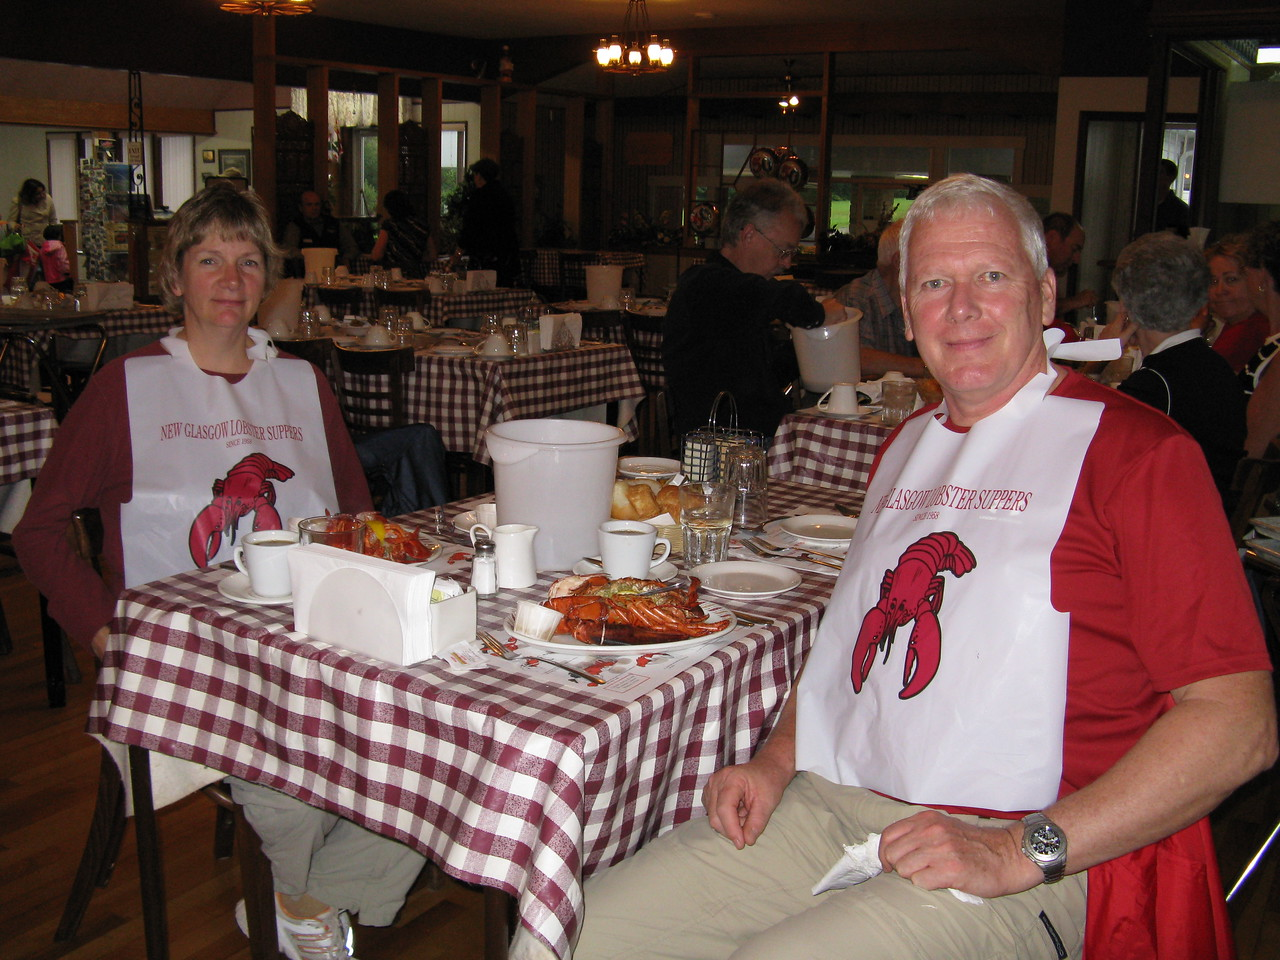 Lobster - and chowder, rolls, salad and all you can eat dessert. An excellent evening.